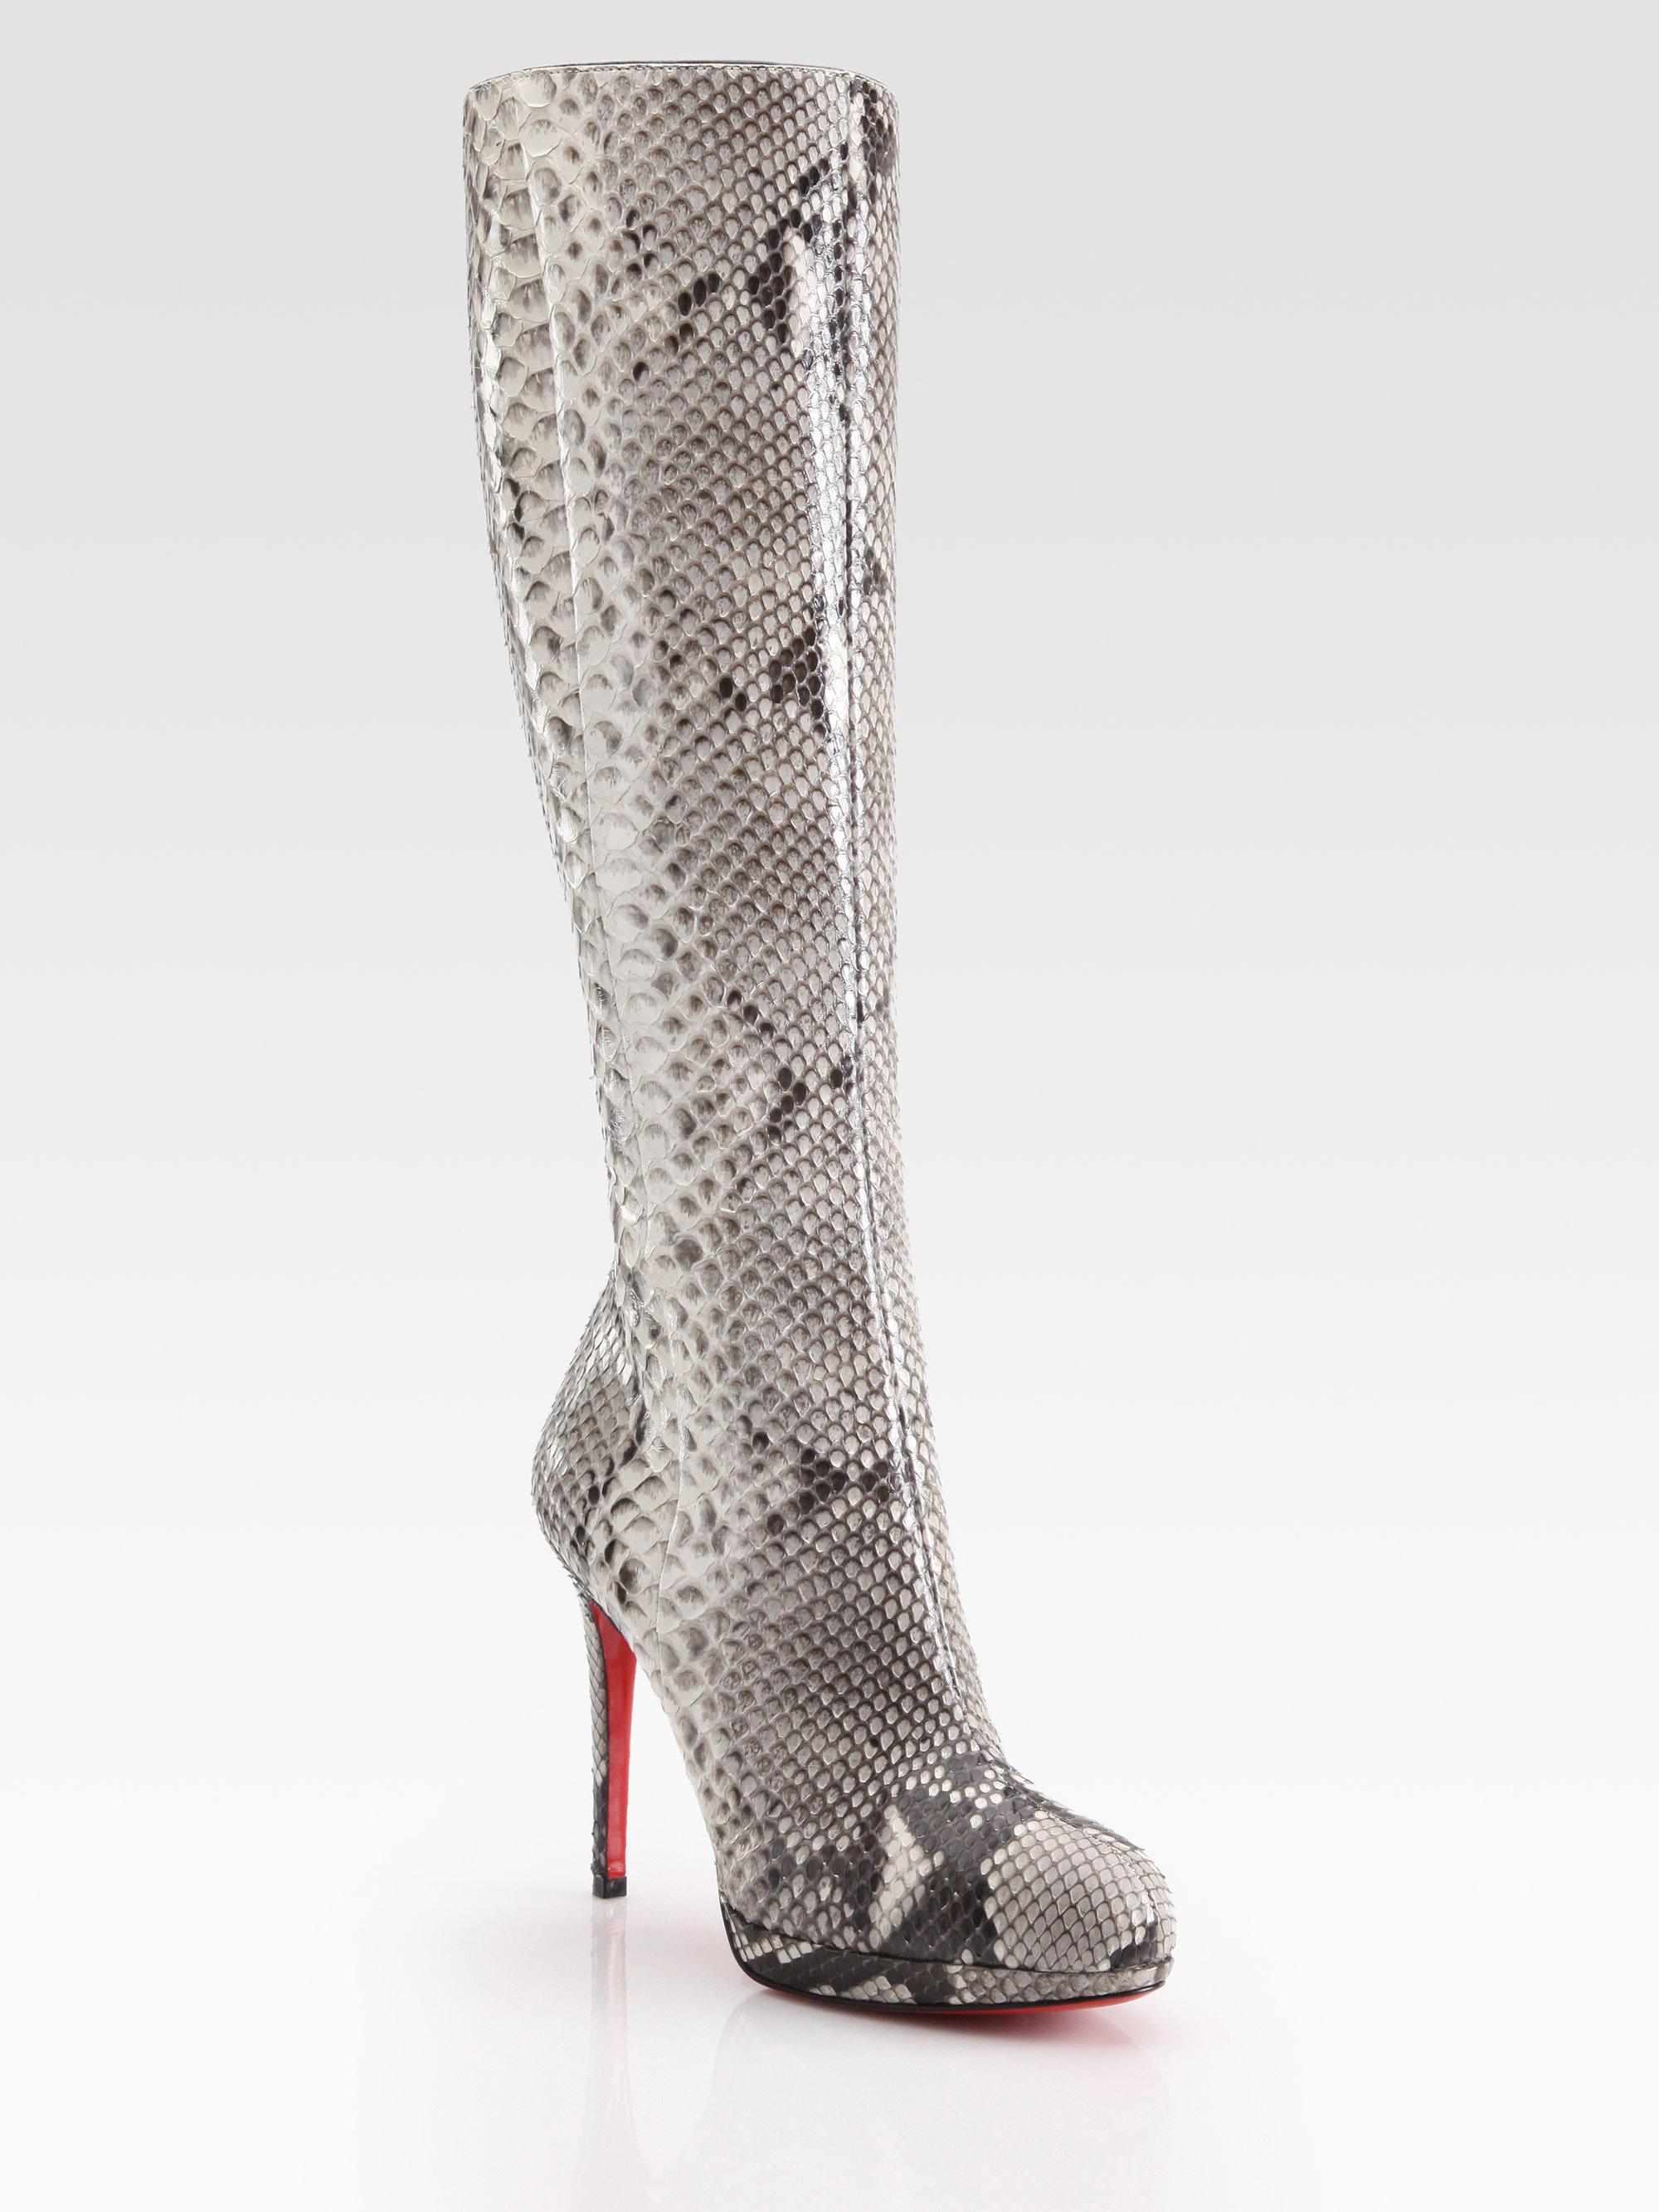 new styles 8a897 bf40d christian louboutin snakeskin leather boots, christian ...